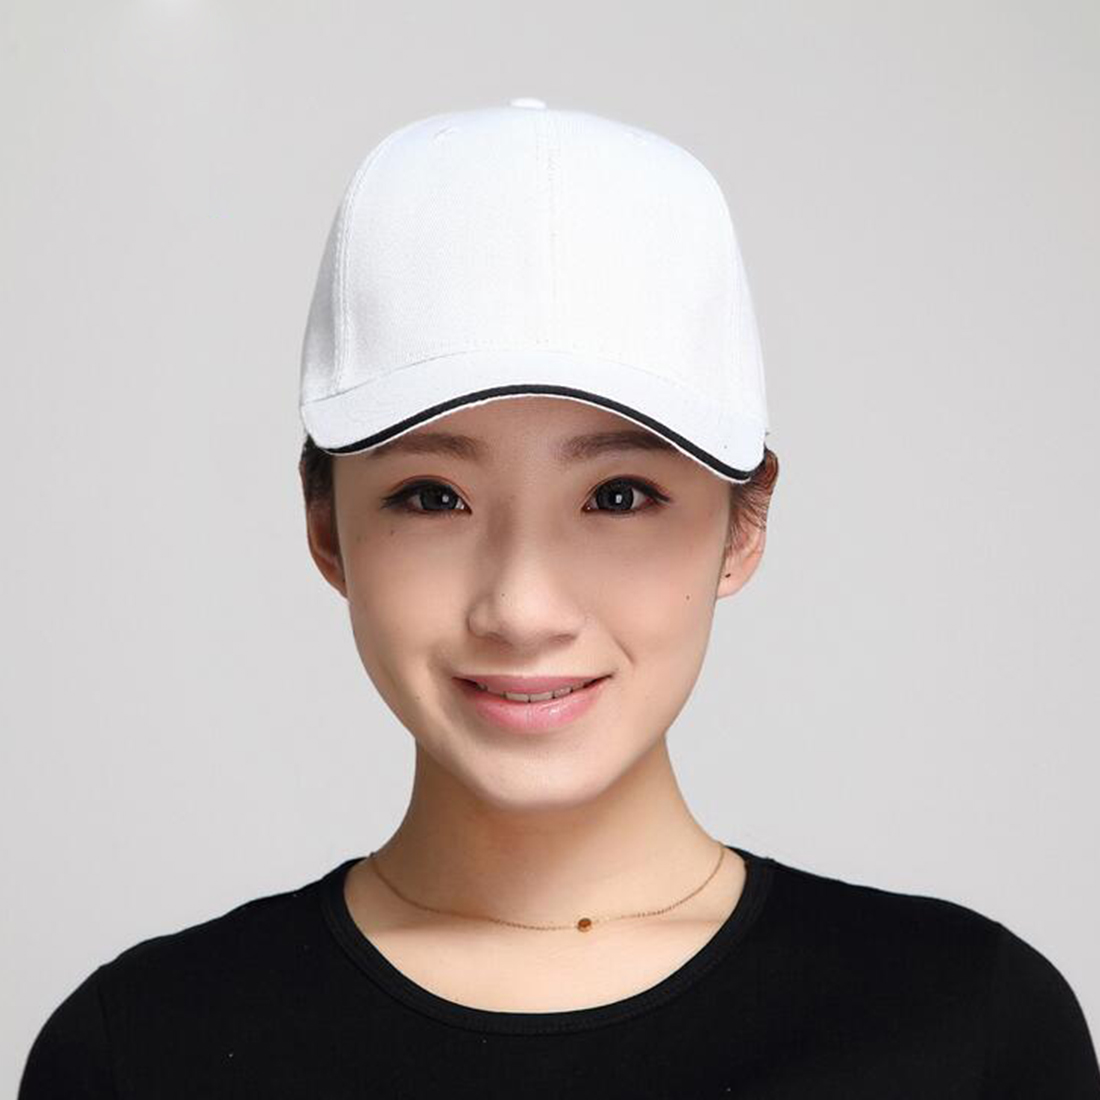 Red Black Blue Pink Gray Dad Hat Hats for Women Men Adjustable Baseball Caps  Ladies Girls Simple Casual Solid Snapback Casquette-in Baseball Caps from  ... 9d427e77b5c